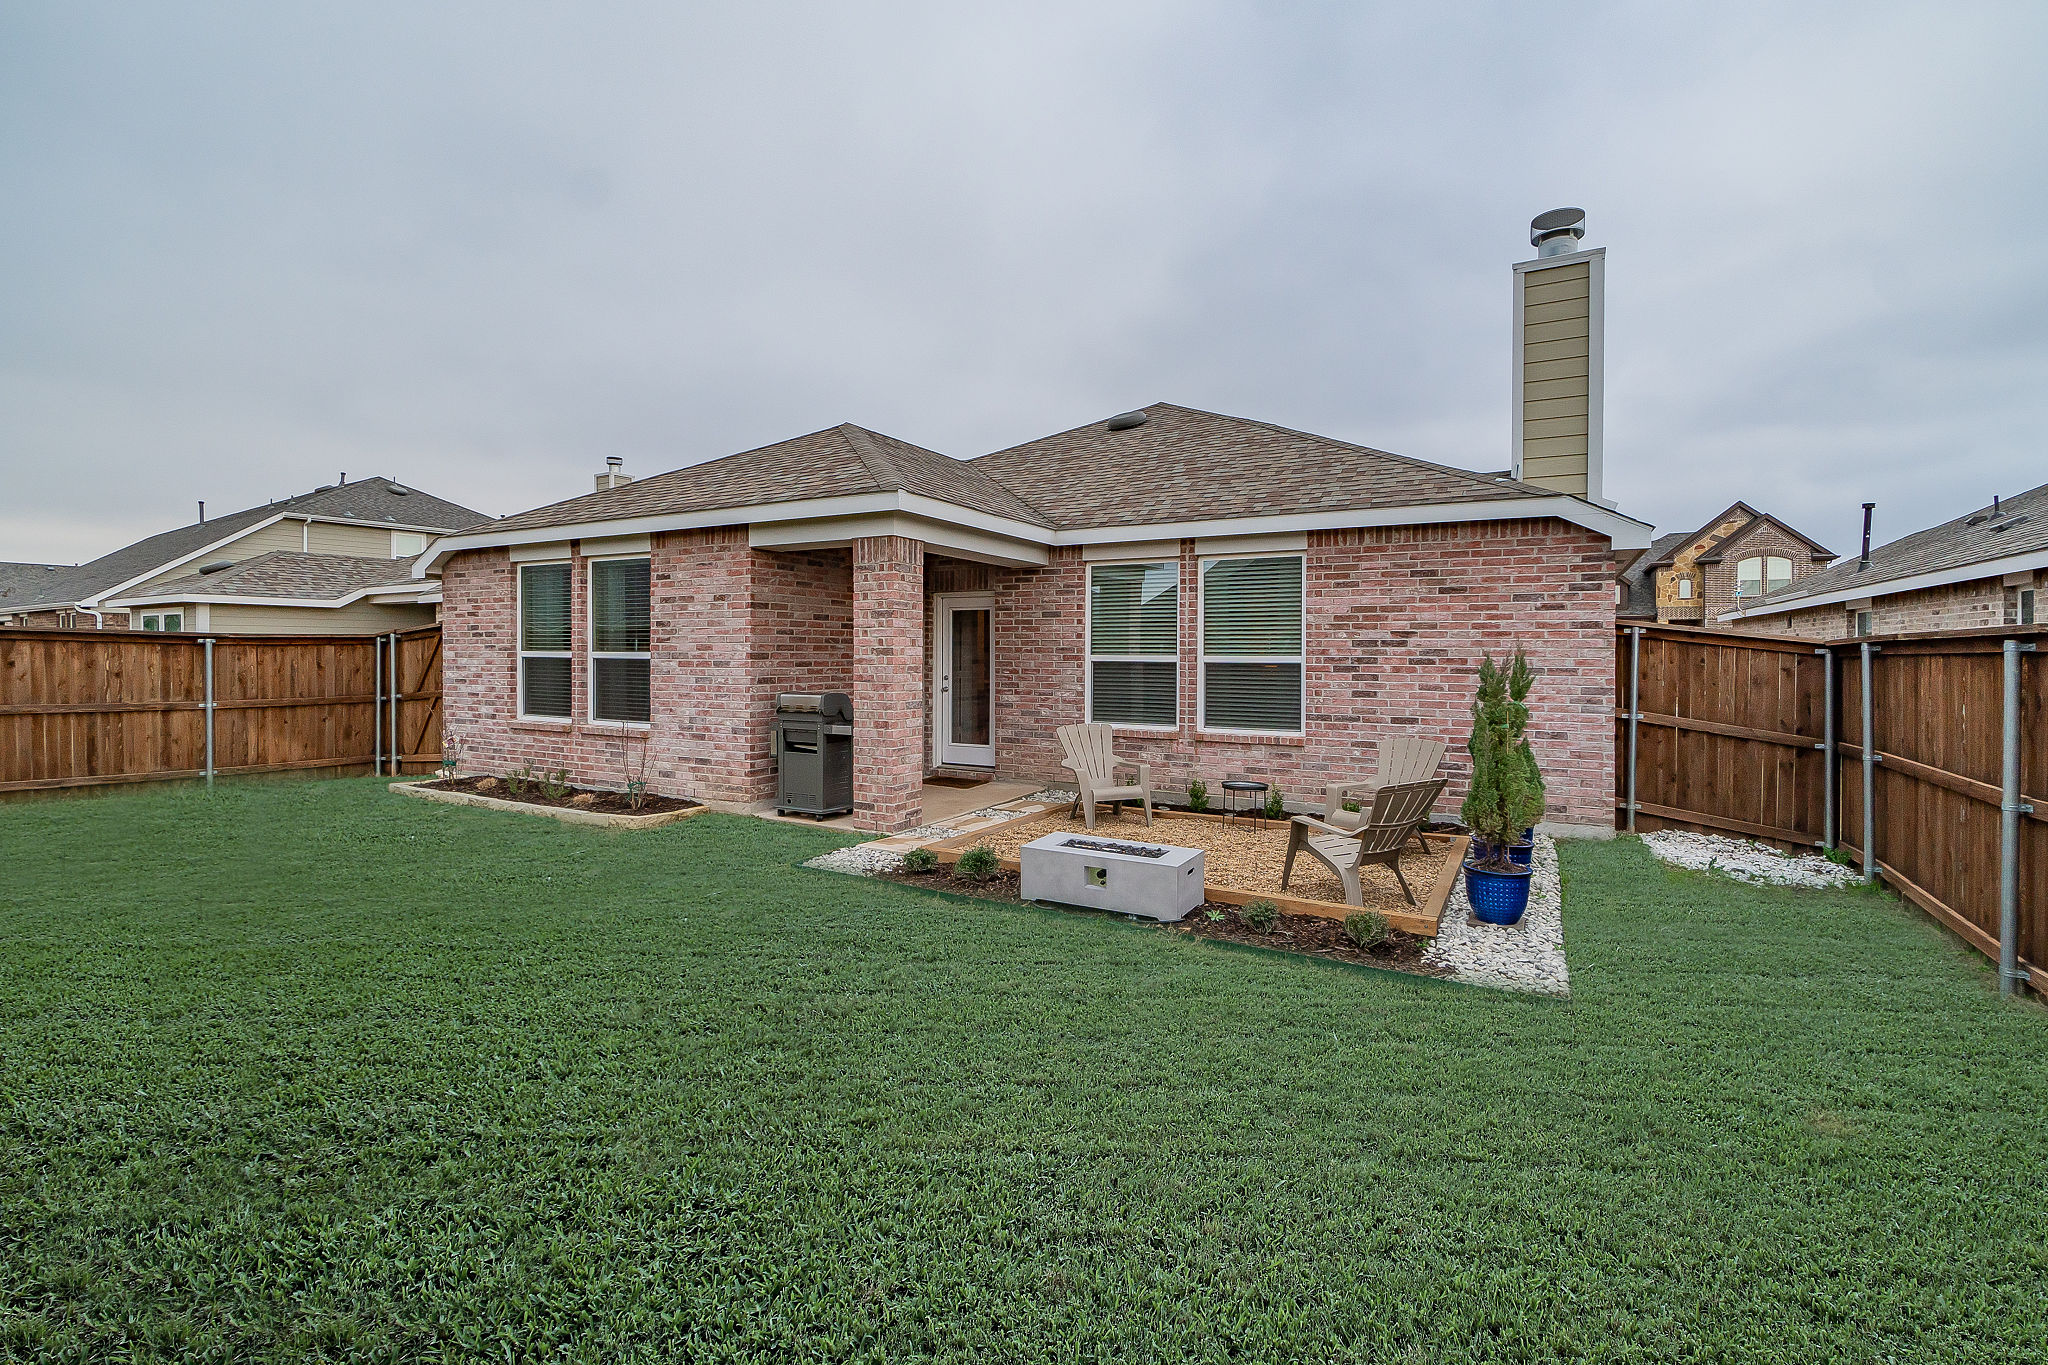 Celina Real Estate Photographer, Photography, 601 Smokebrush Street Celina Texas 75009 (112).jpg